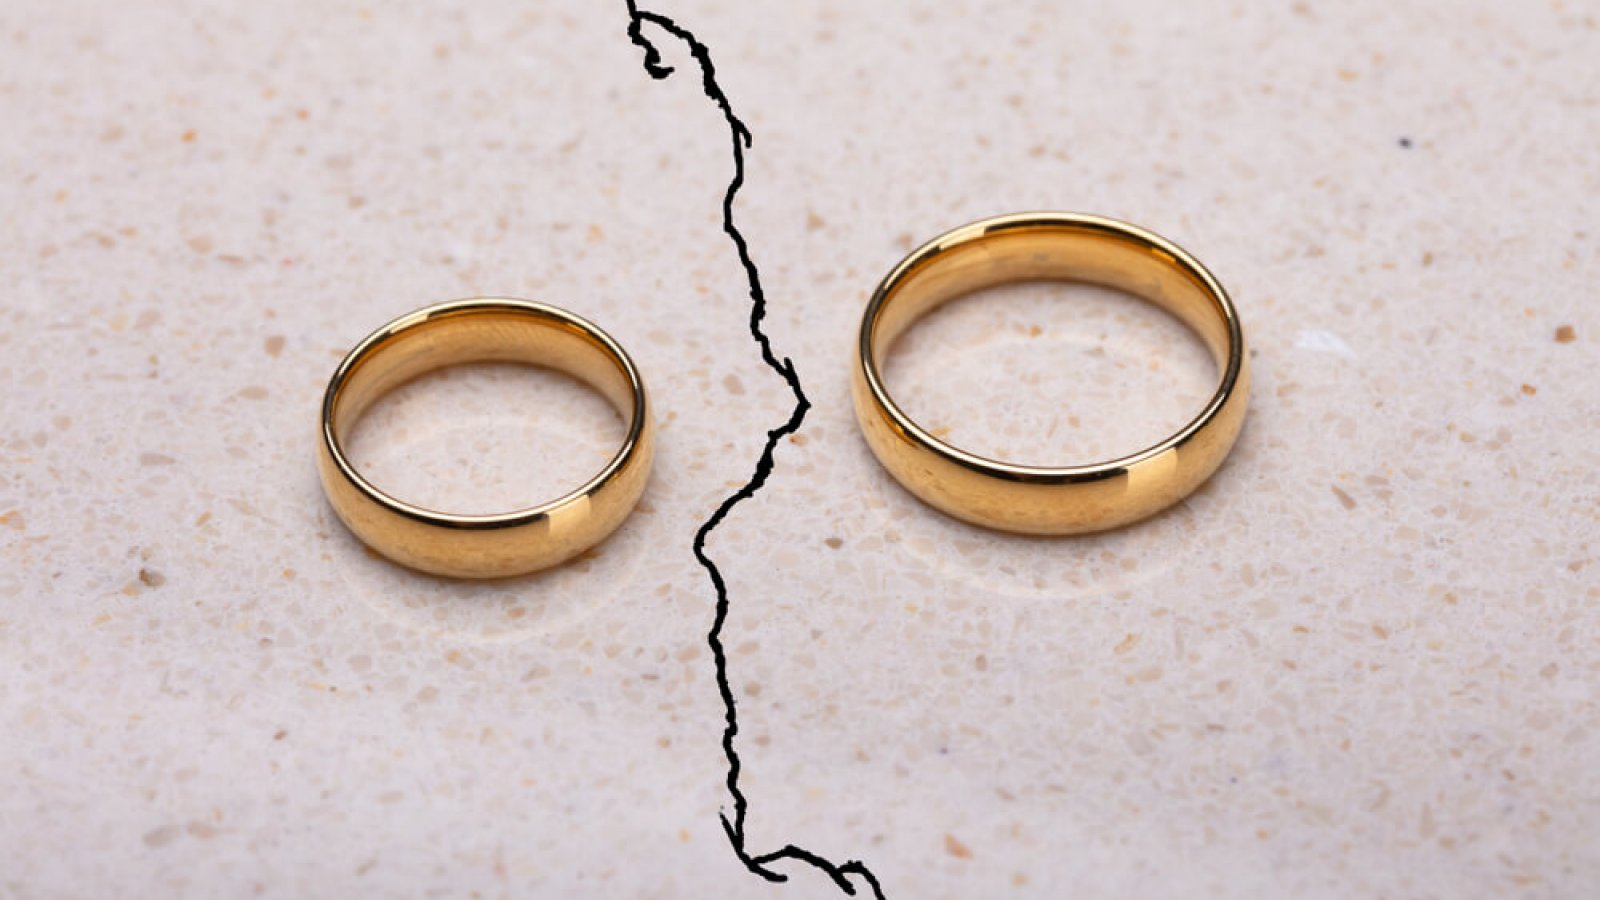 Two weddings runs separated by a crack in concrete